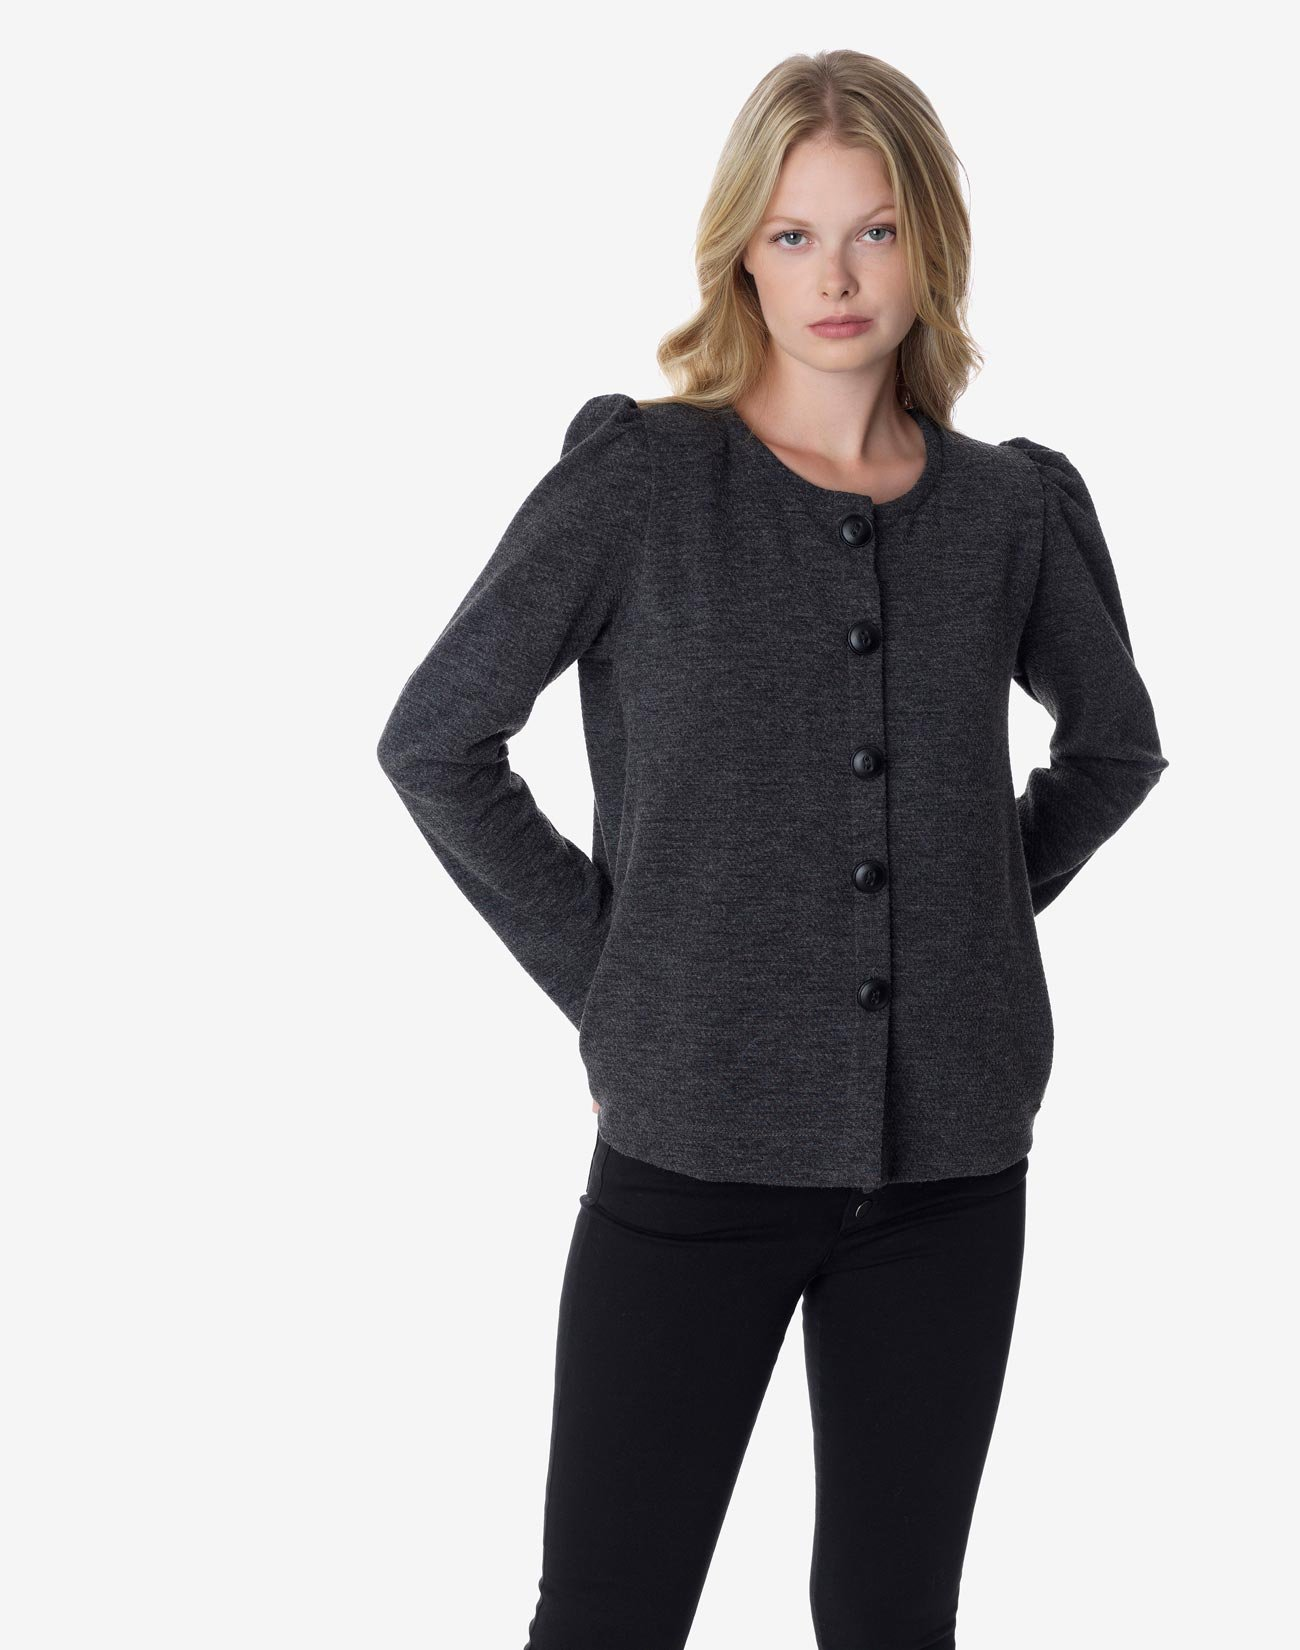 Cardigan with shoulder pads